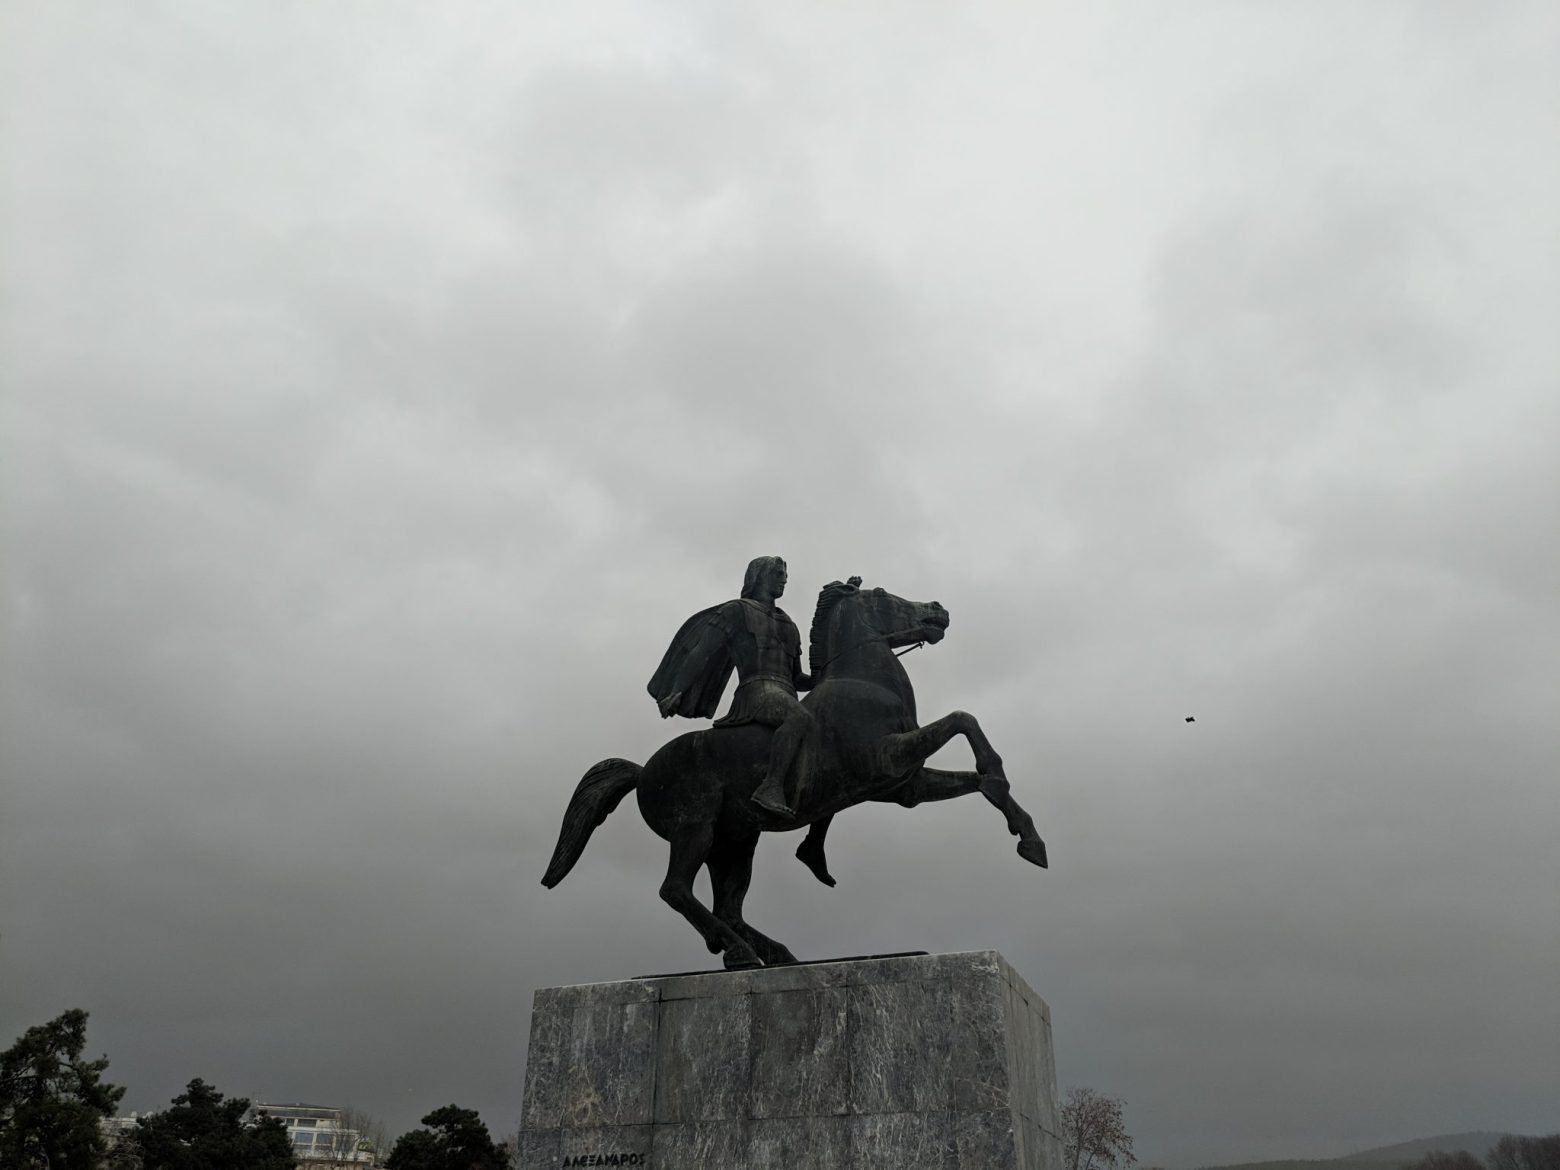 Thessaloniki: A popular tourist destination